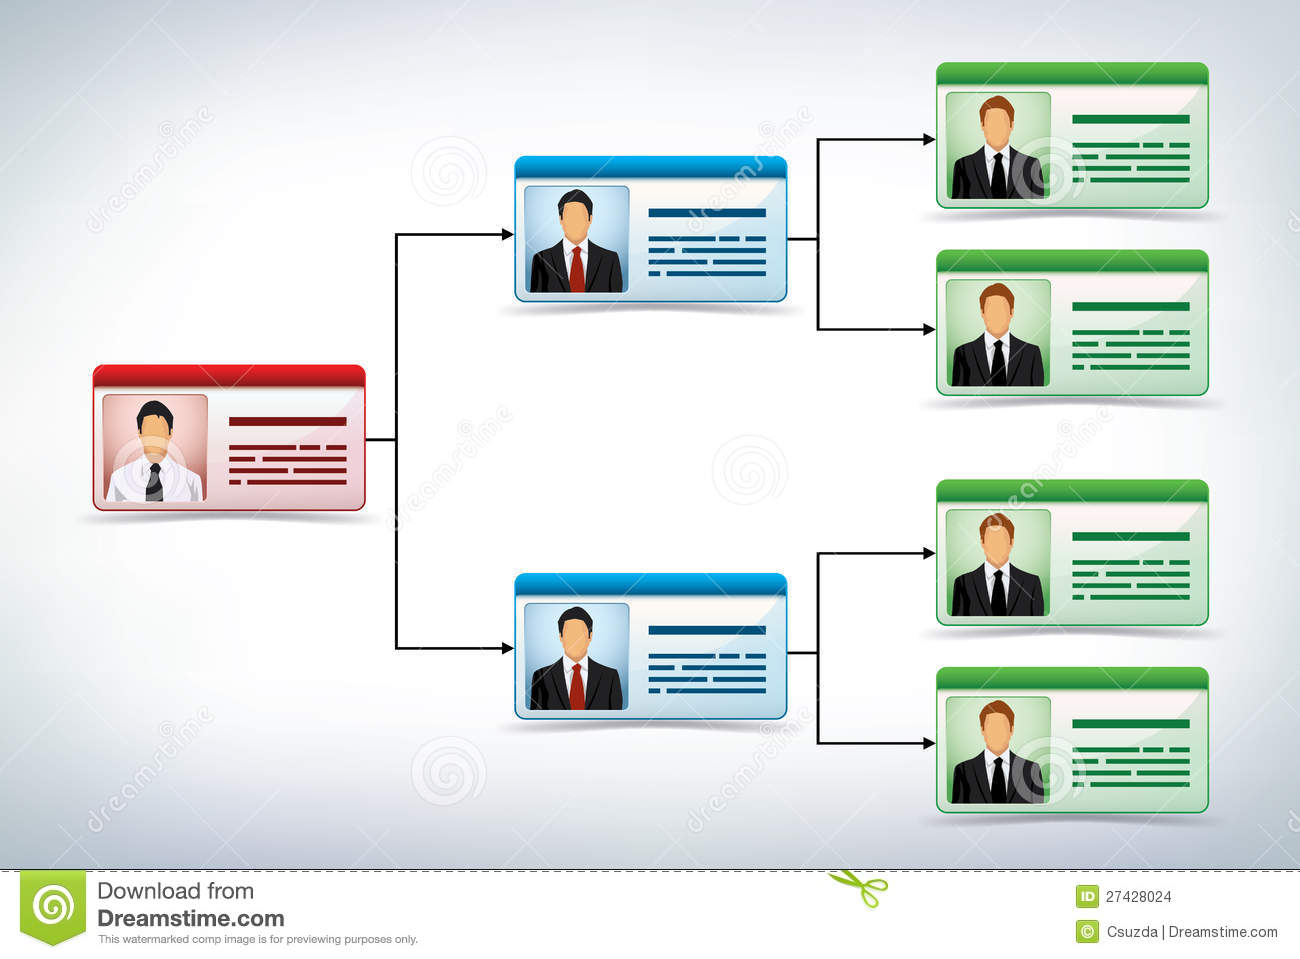 Business Management Tree Template Stock Images - Image: 27428024